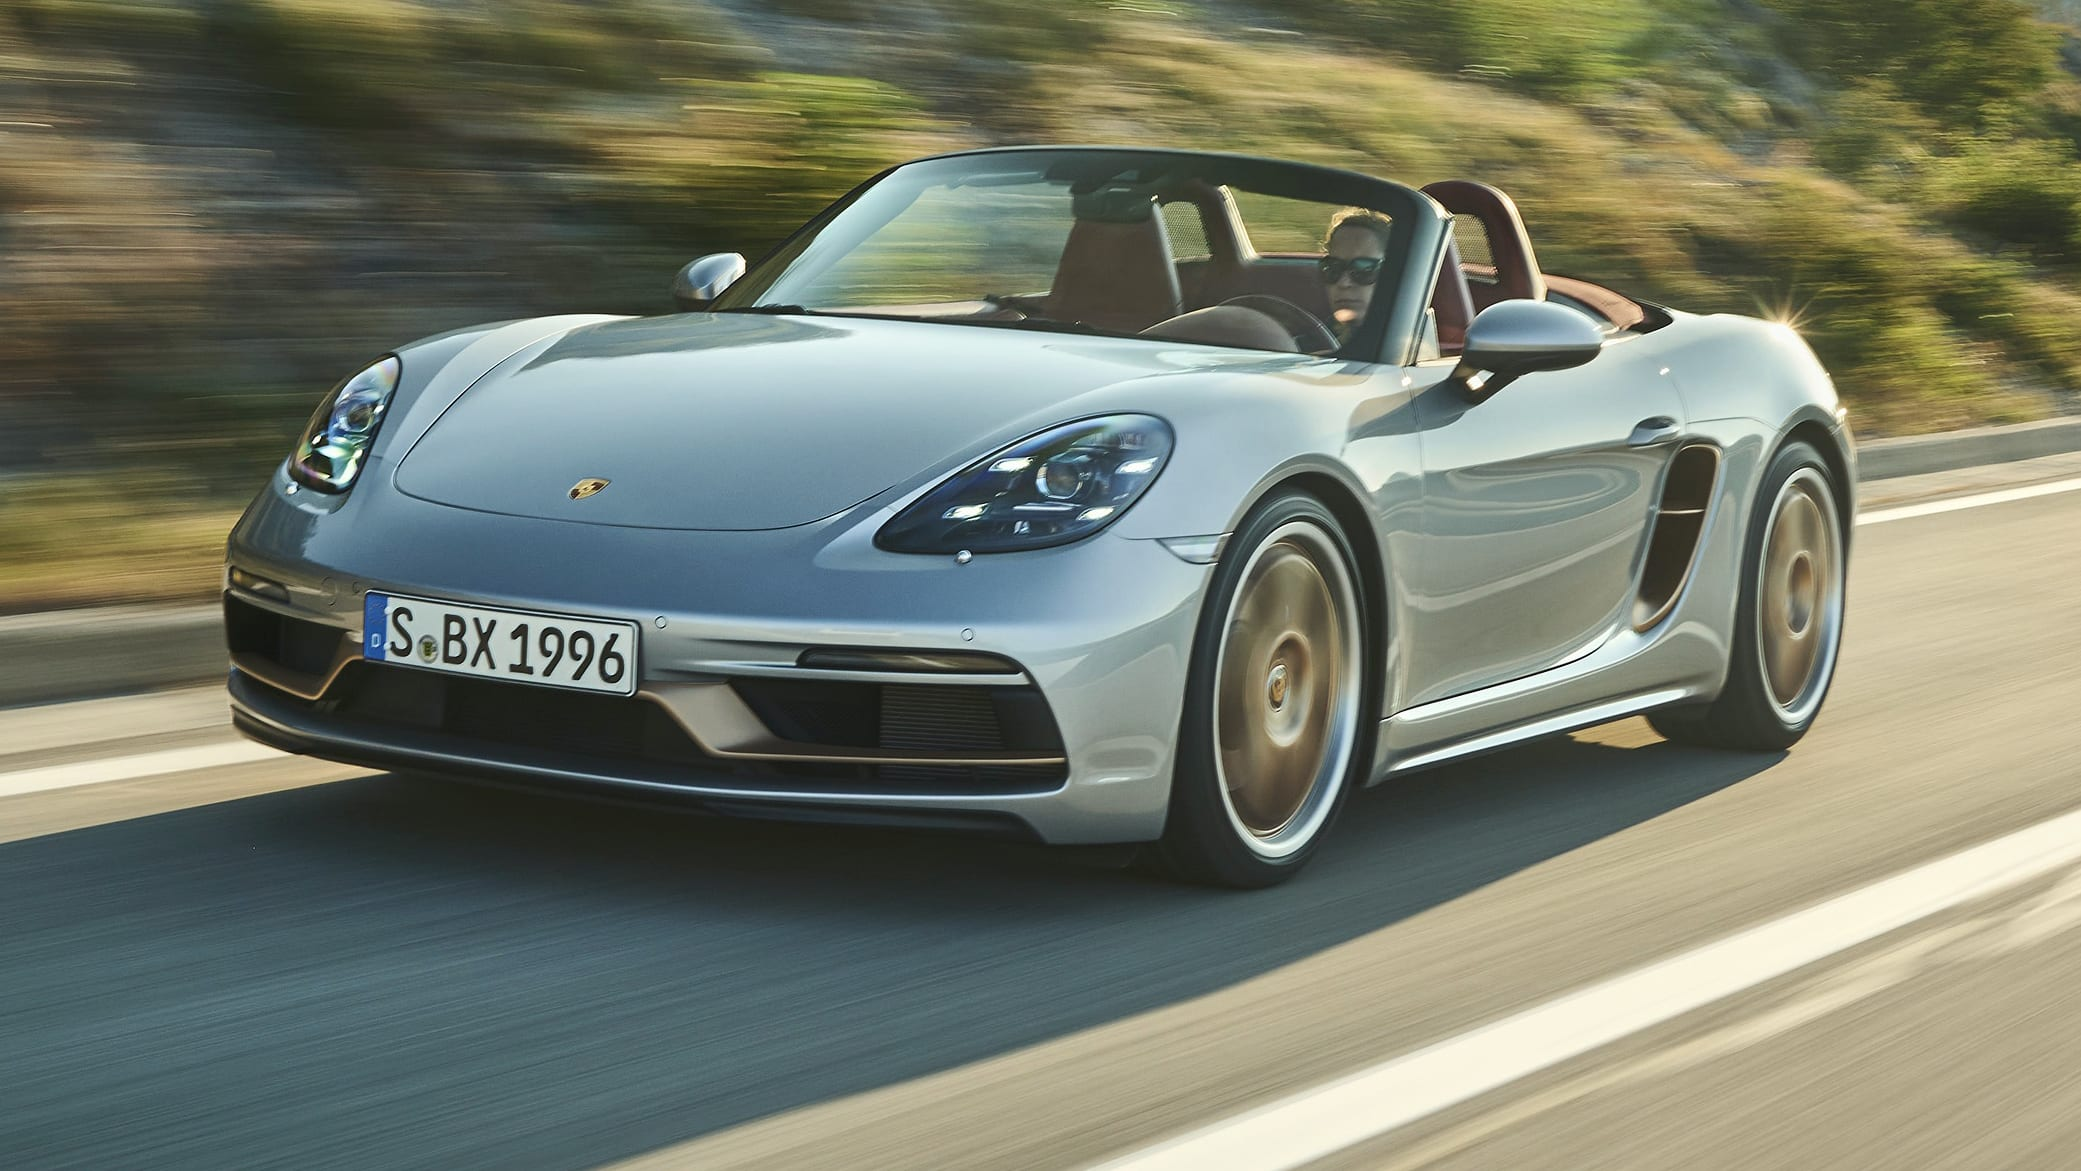 2021 Porsche Boxster 25 Years launched as limited-edition